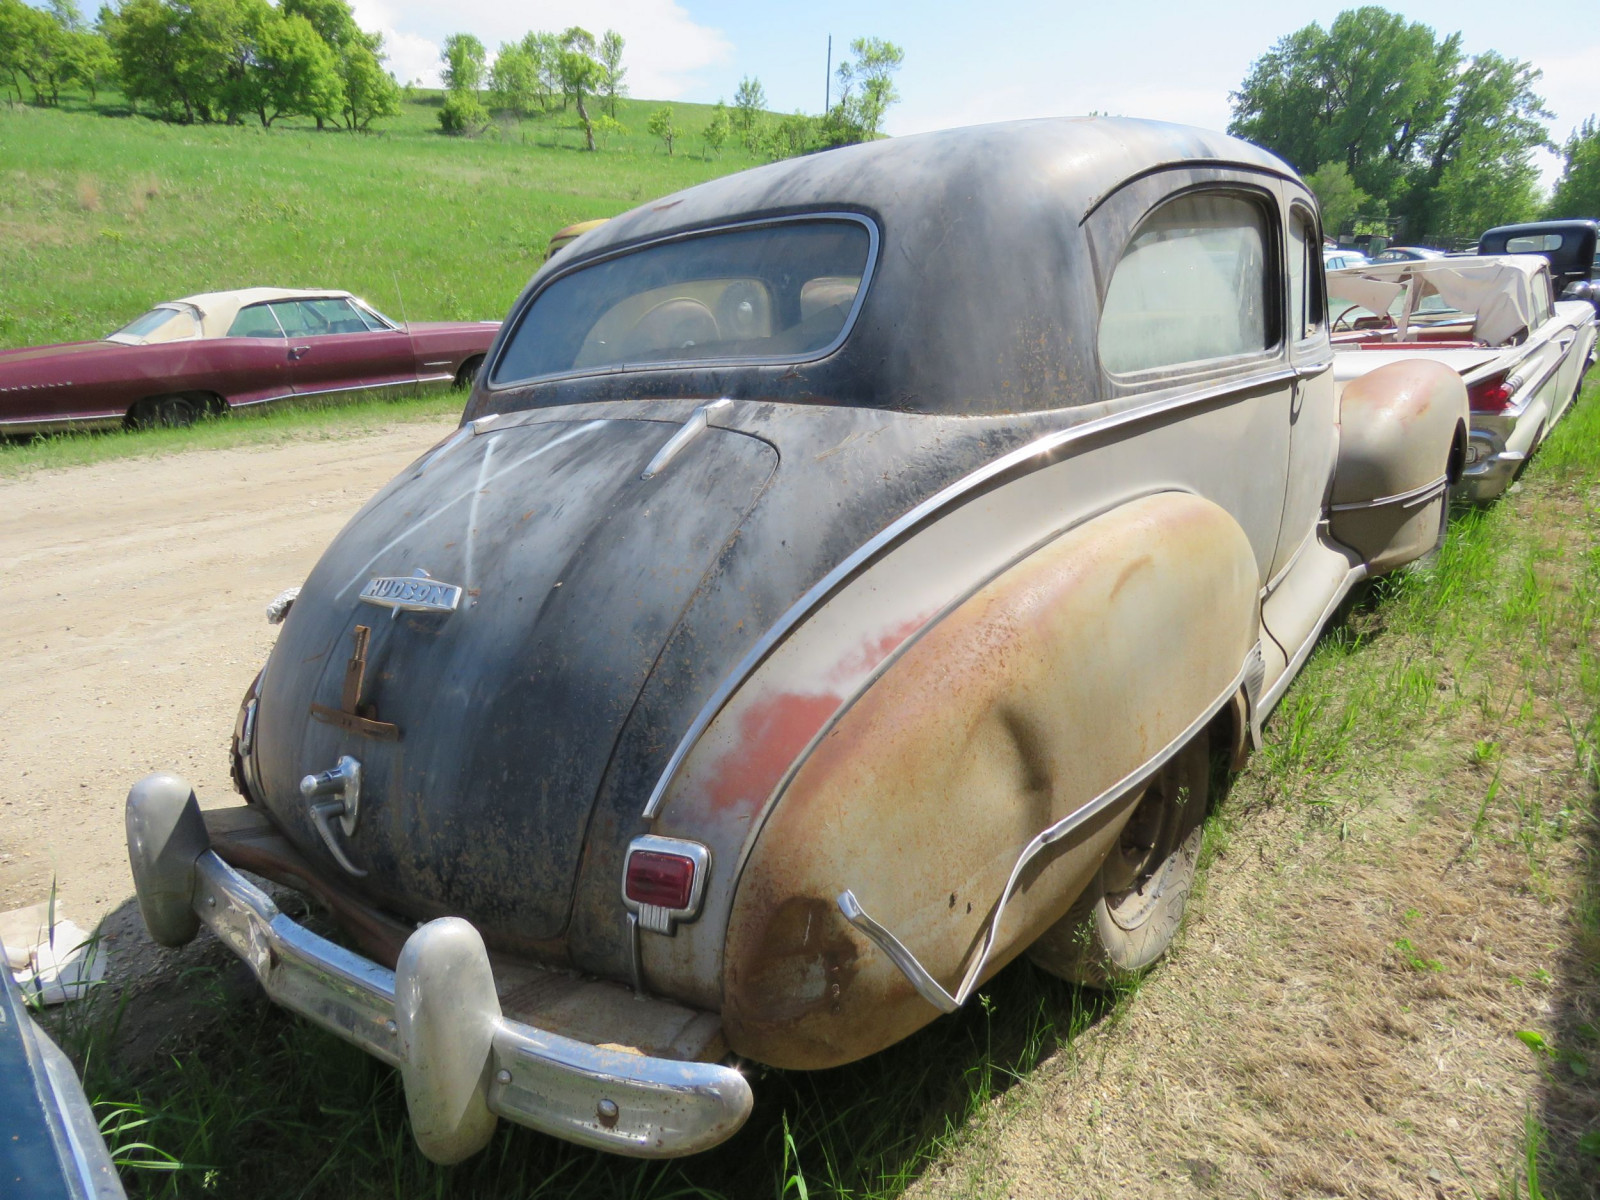 1946 Hudson 2dr Sedan for Rod or Restore - Image 3